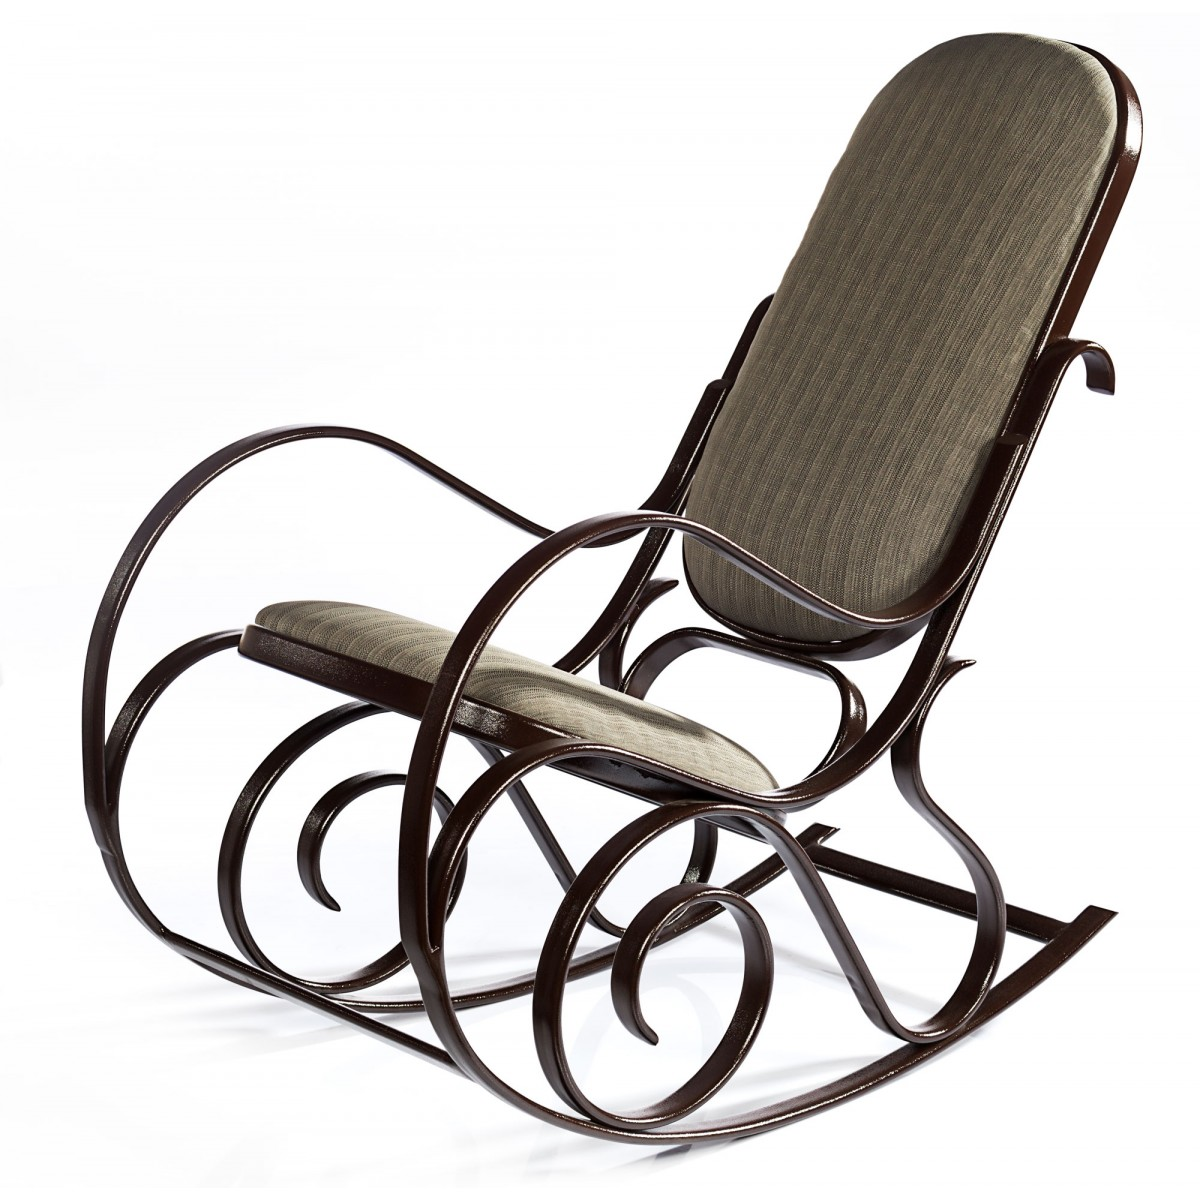 Admirable Kcs Rocking Chair Price In India Buy Kcs Rocking Chair Dailytribune Chair Design For Home Dailytribuneorg